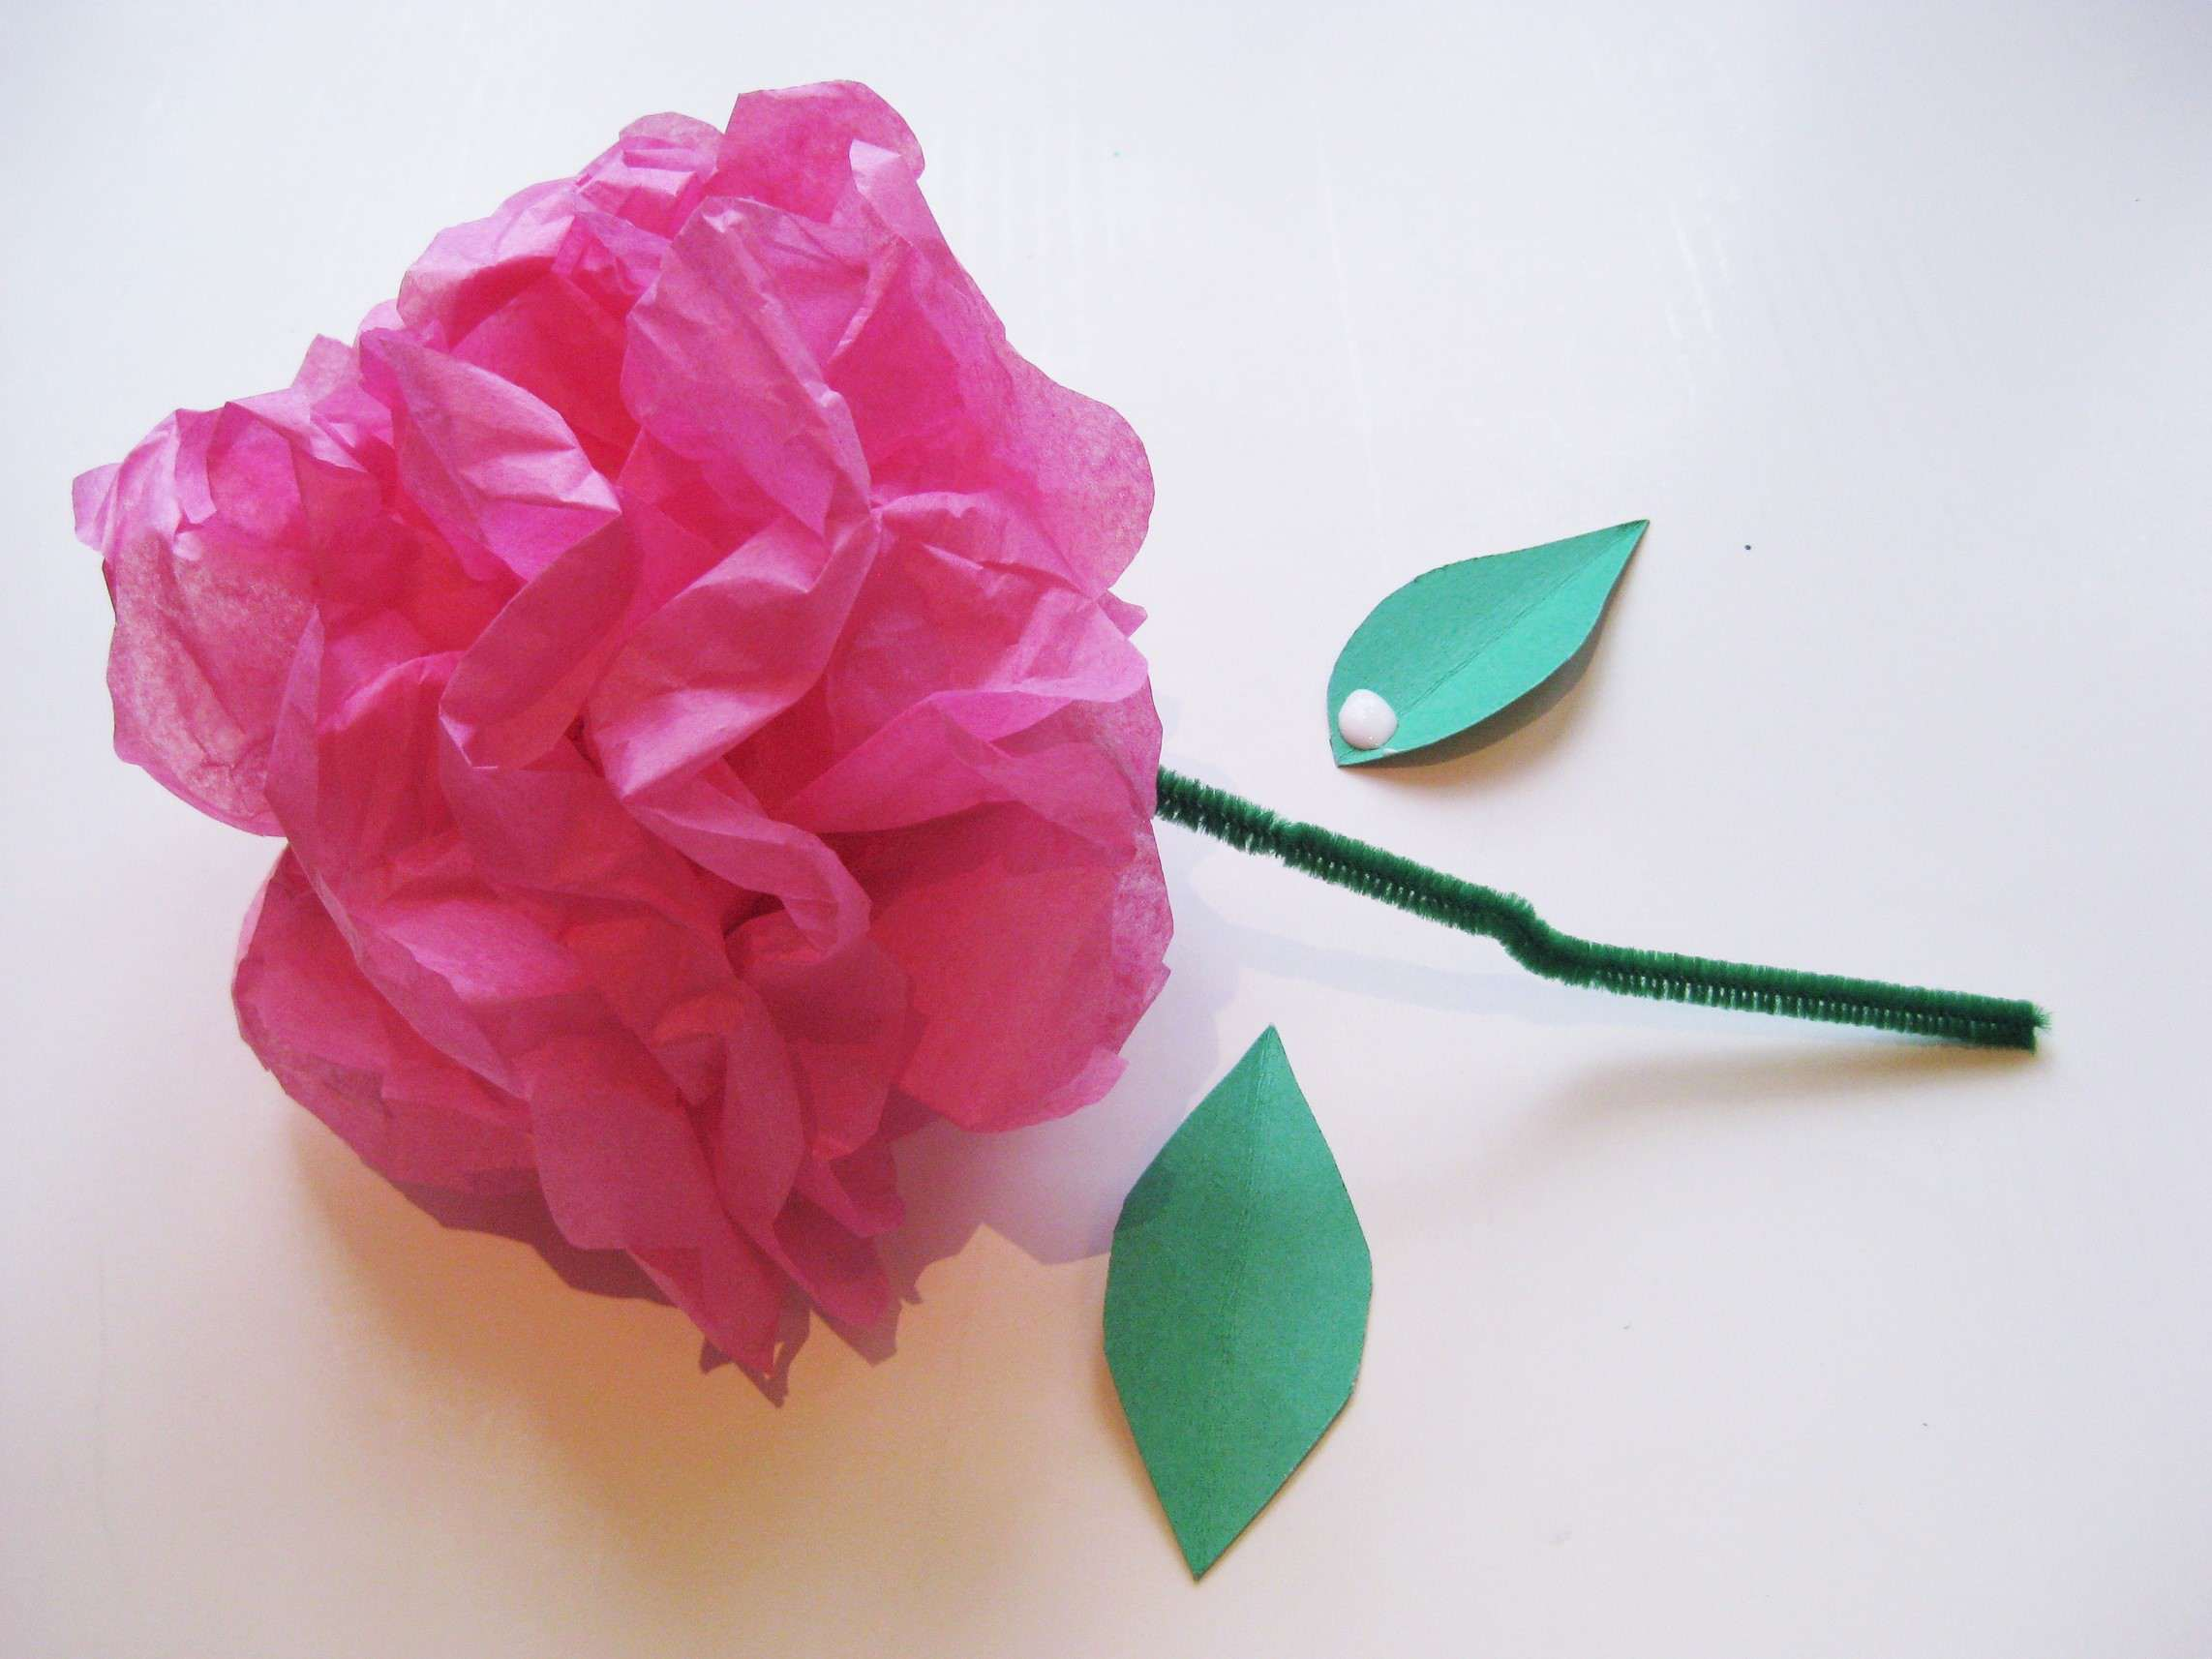 Simple steps to craft tissue paper flowers glue the leaves to the blossoms mightylinksfo